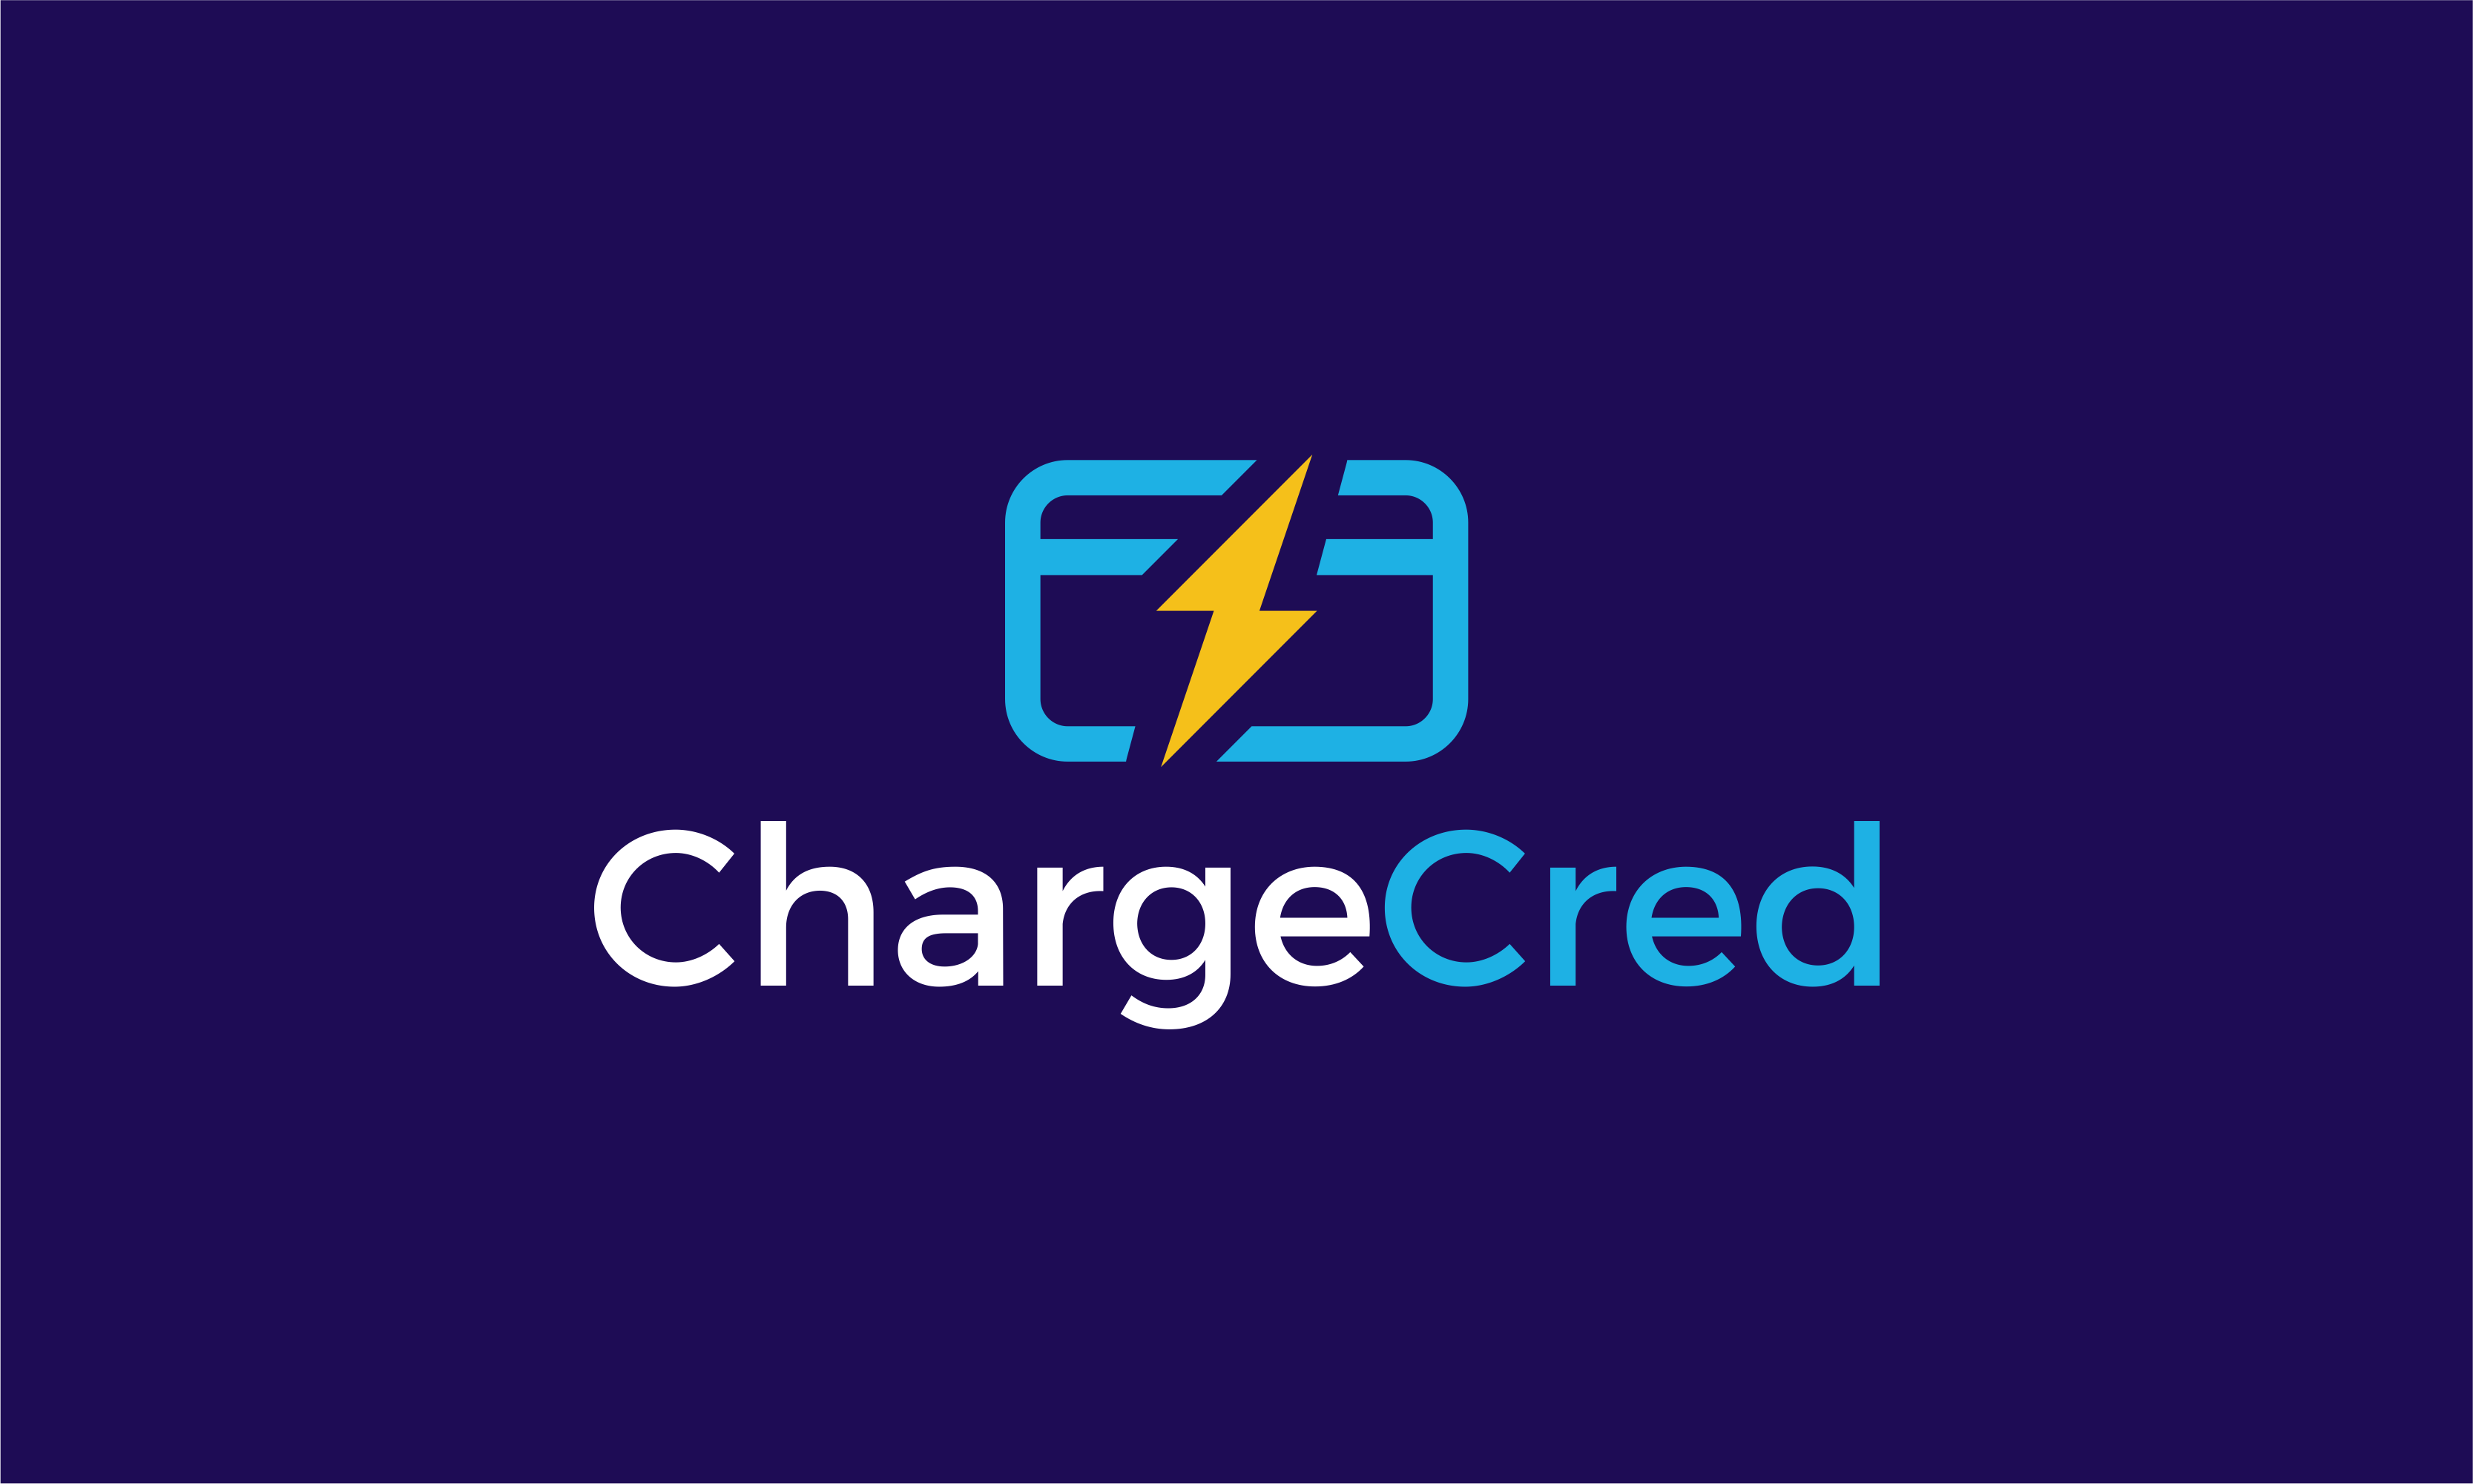 Chargecred